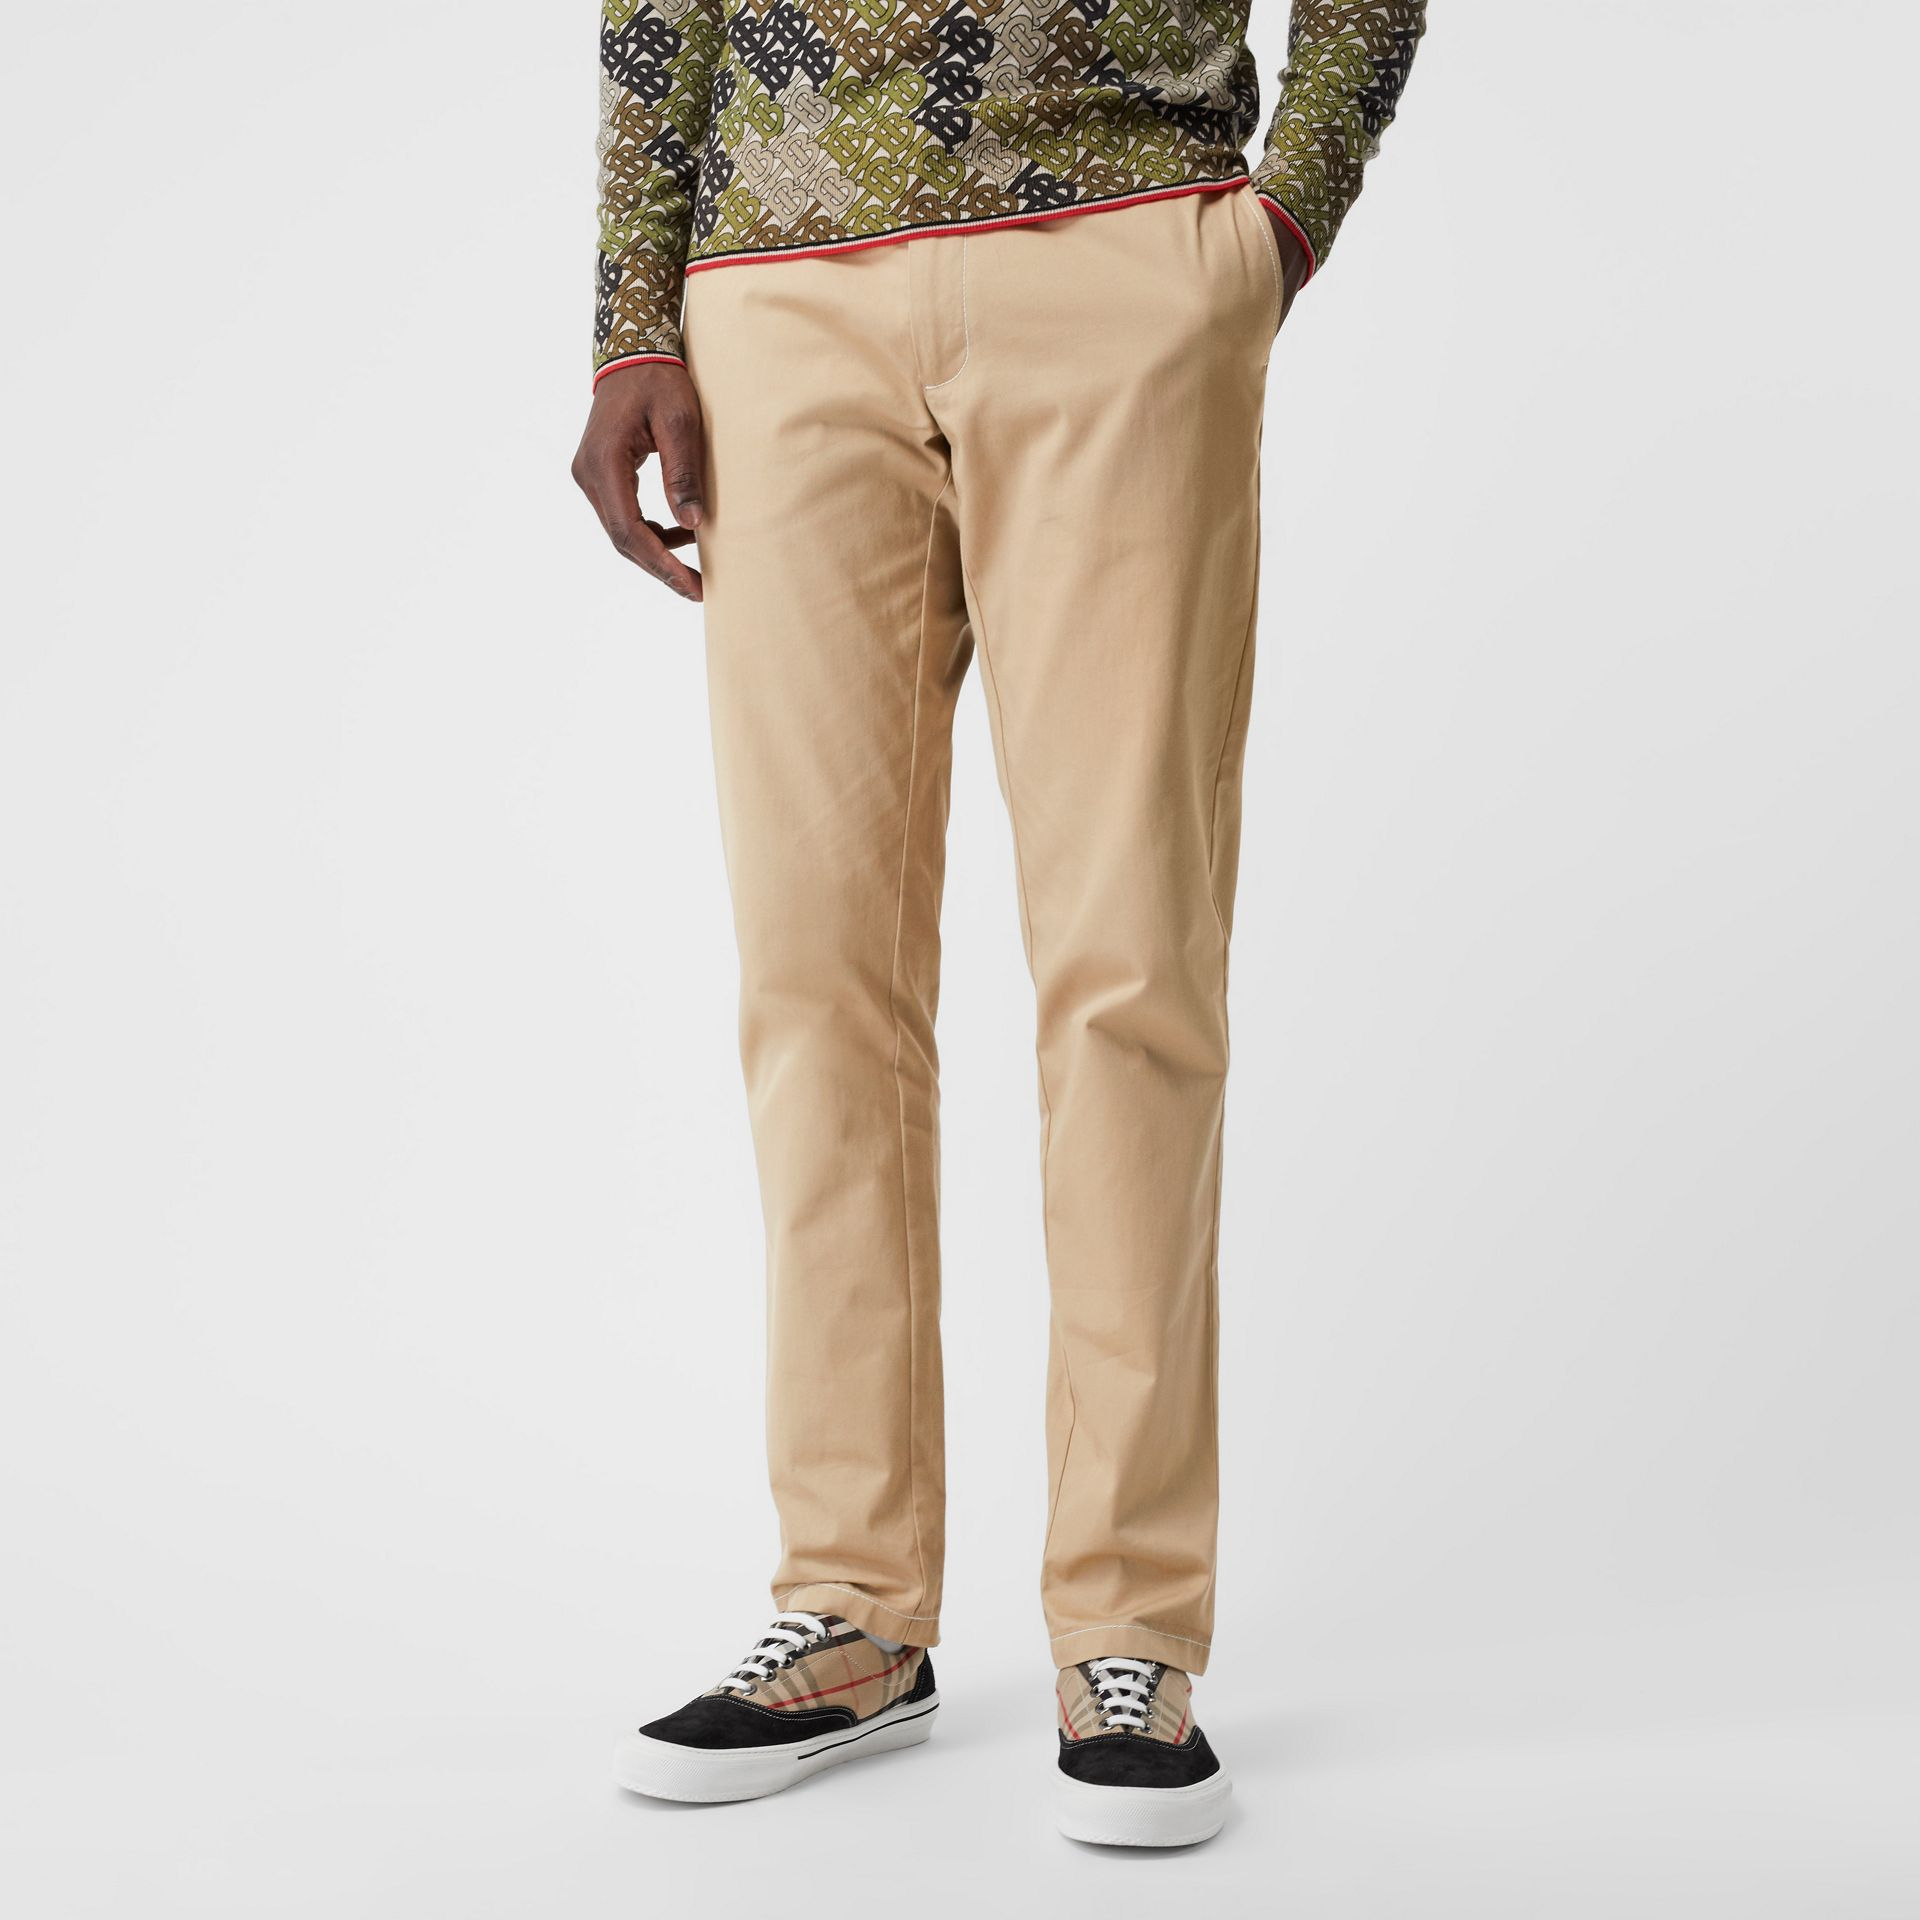 Pantalon chino slim en coton avec surpiqûres (Miel) - Homme | Burberry - photo de la galerie 4